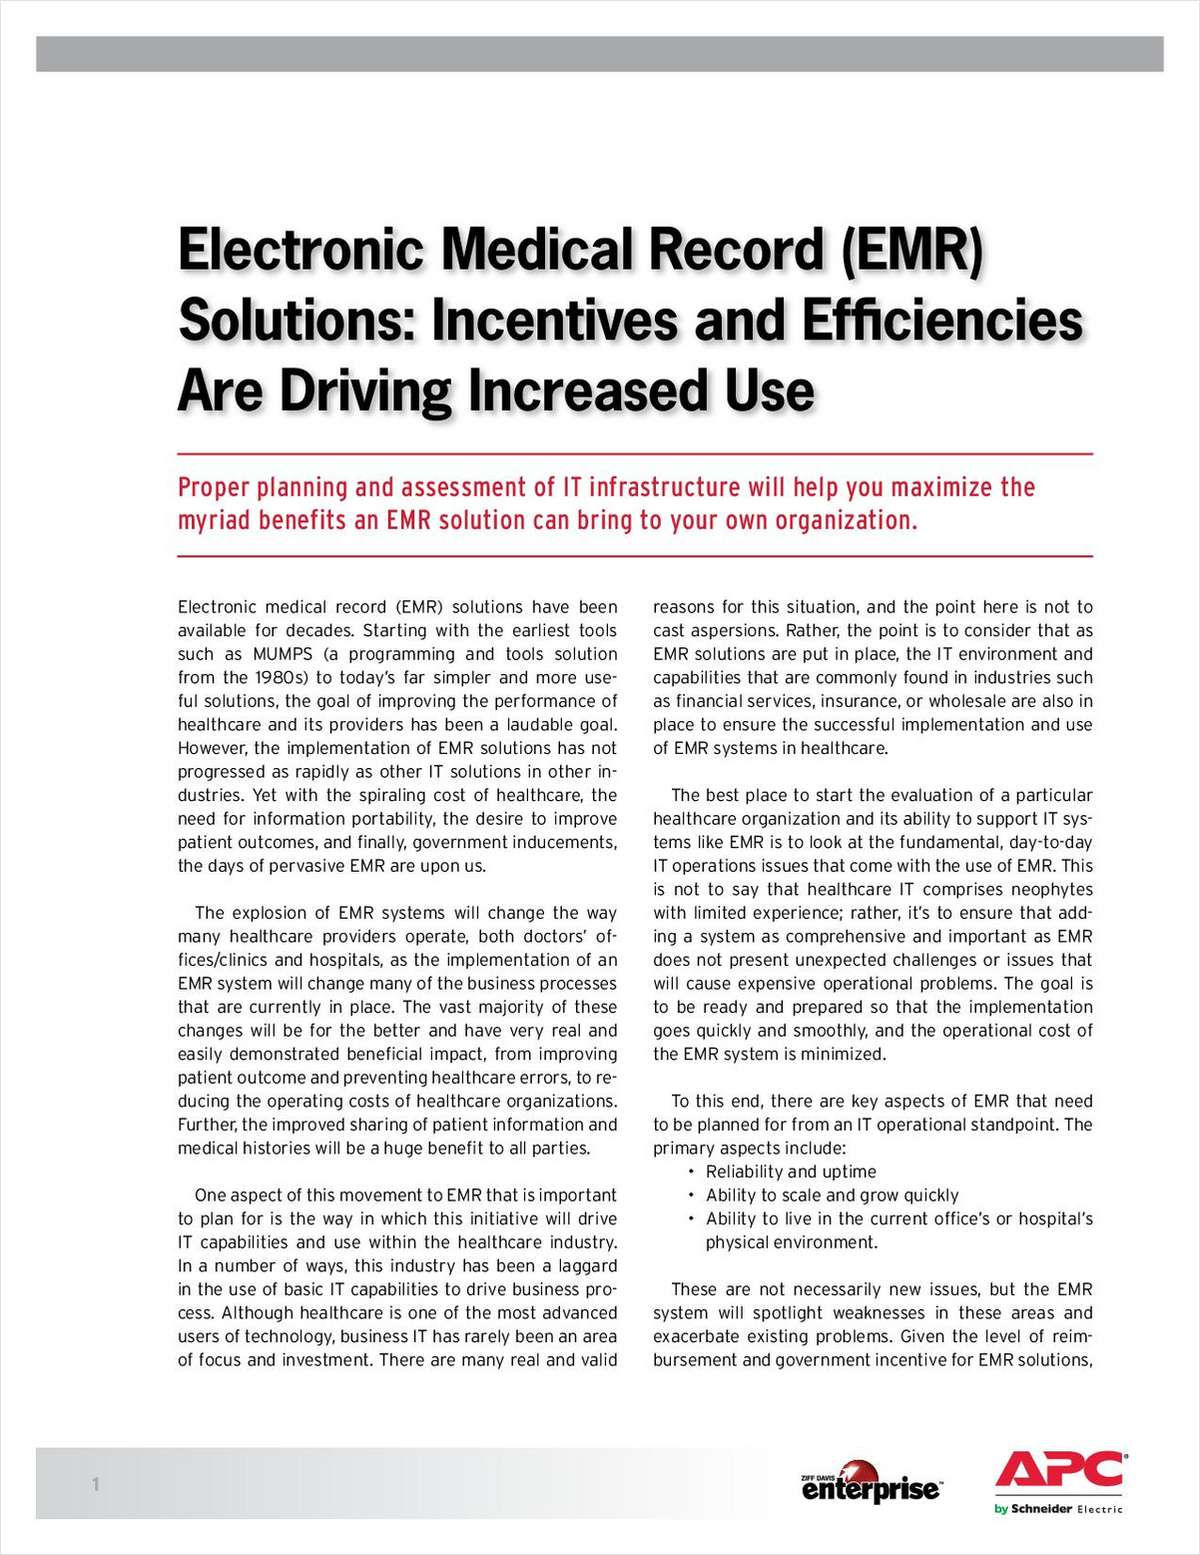 Electronic Medical Record (EMR) Solutions: How Incentives and Efficiencies Are Driving Increased Use